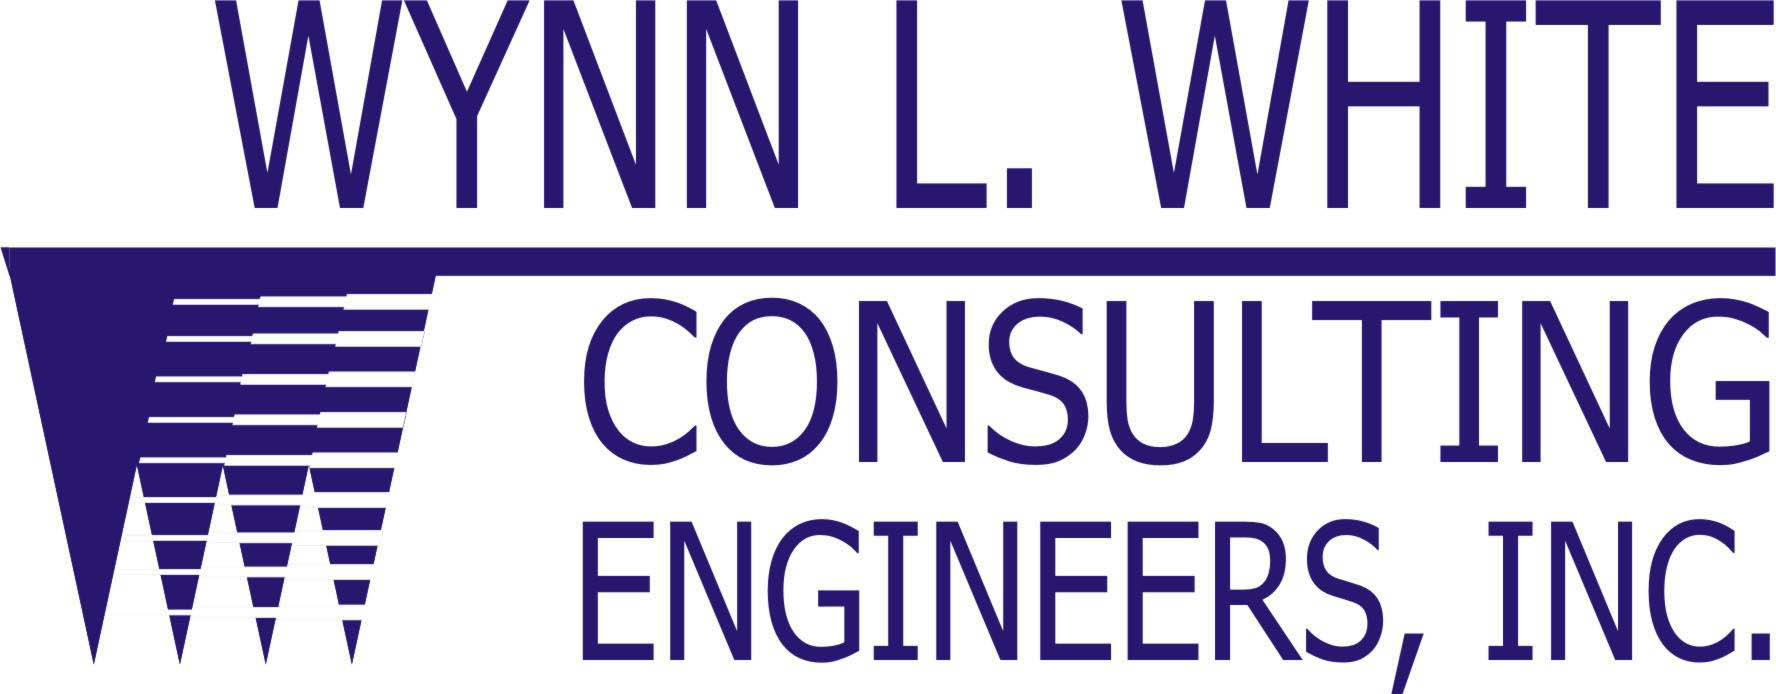 Wynn L. White Consulting Engineers